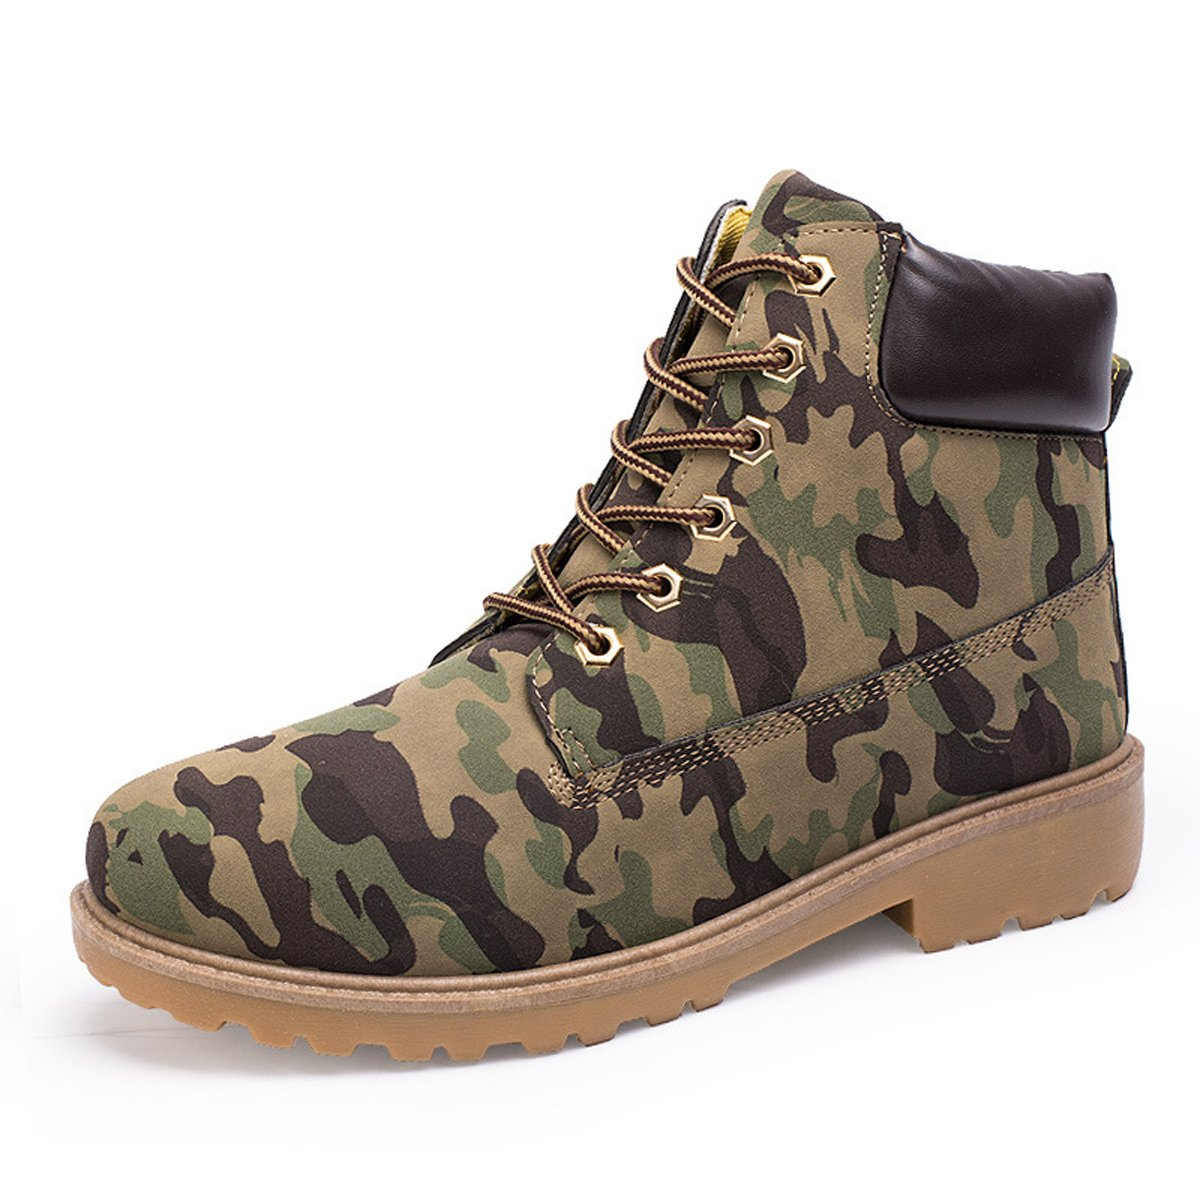 Mens Womens Chukka Ankle Boots Lace up Fashion Waterproof Anti-Slip Outdoor Work Hiking Martin Combat Bootie Boot Camouflage 8 D(M) US